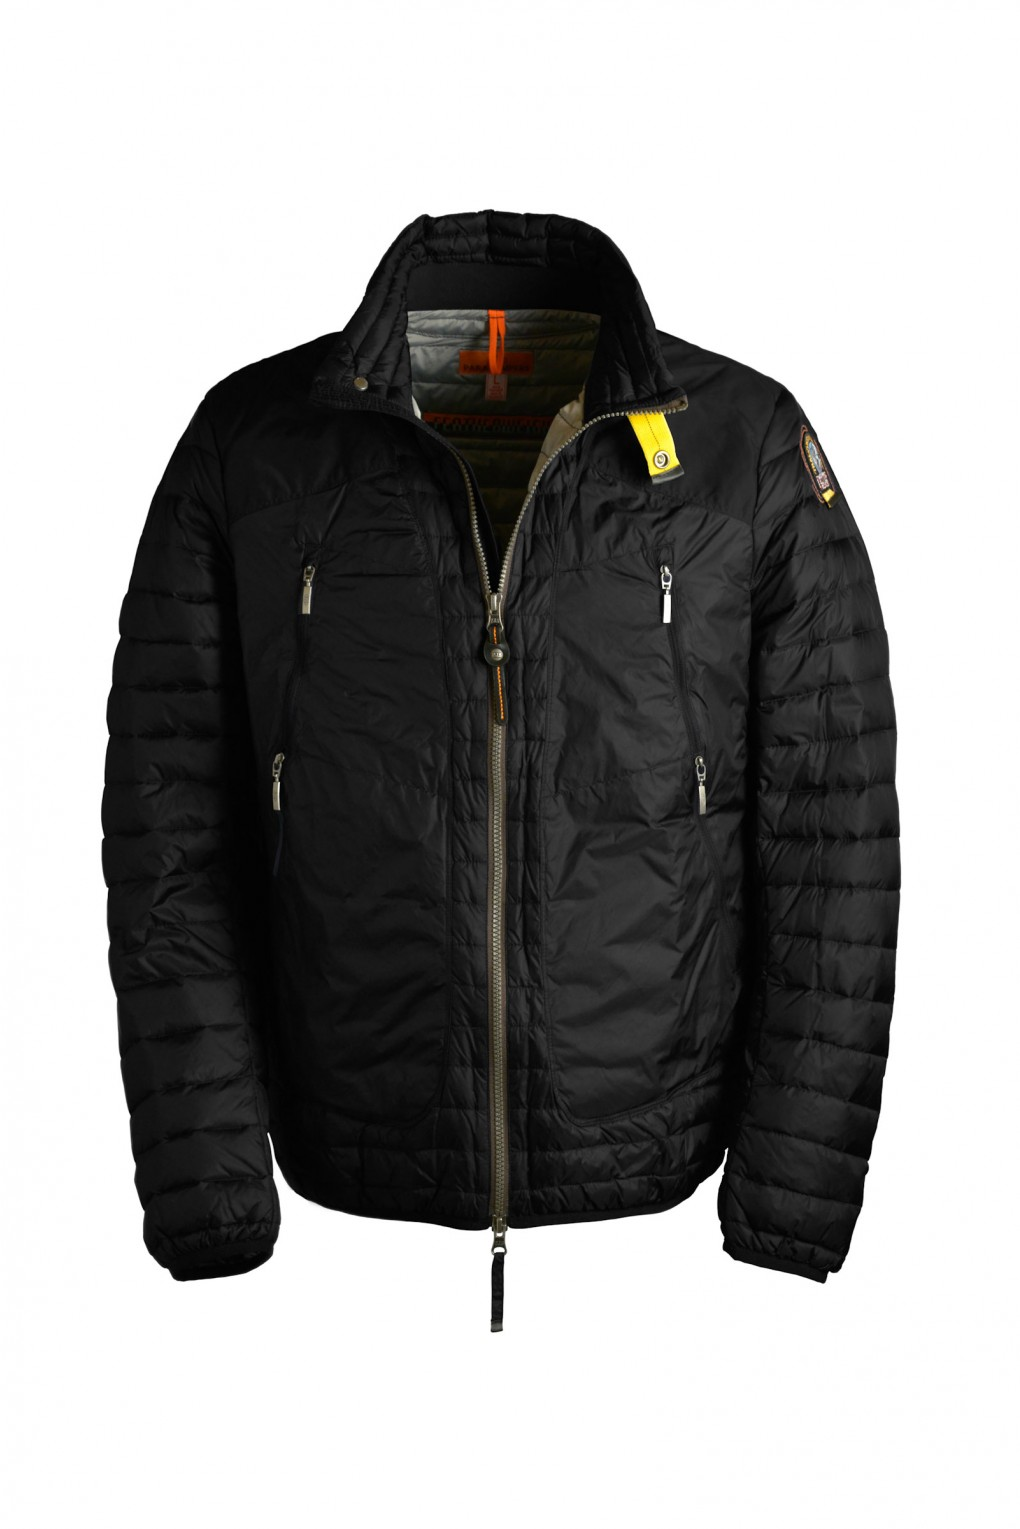 parajumpers GIULY man outerwear Black